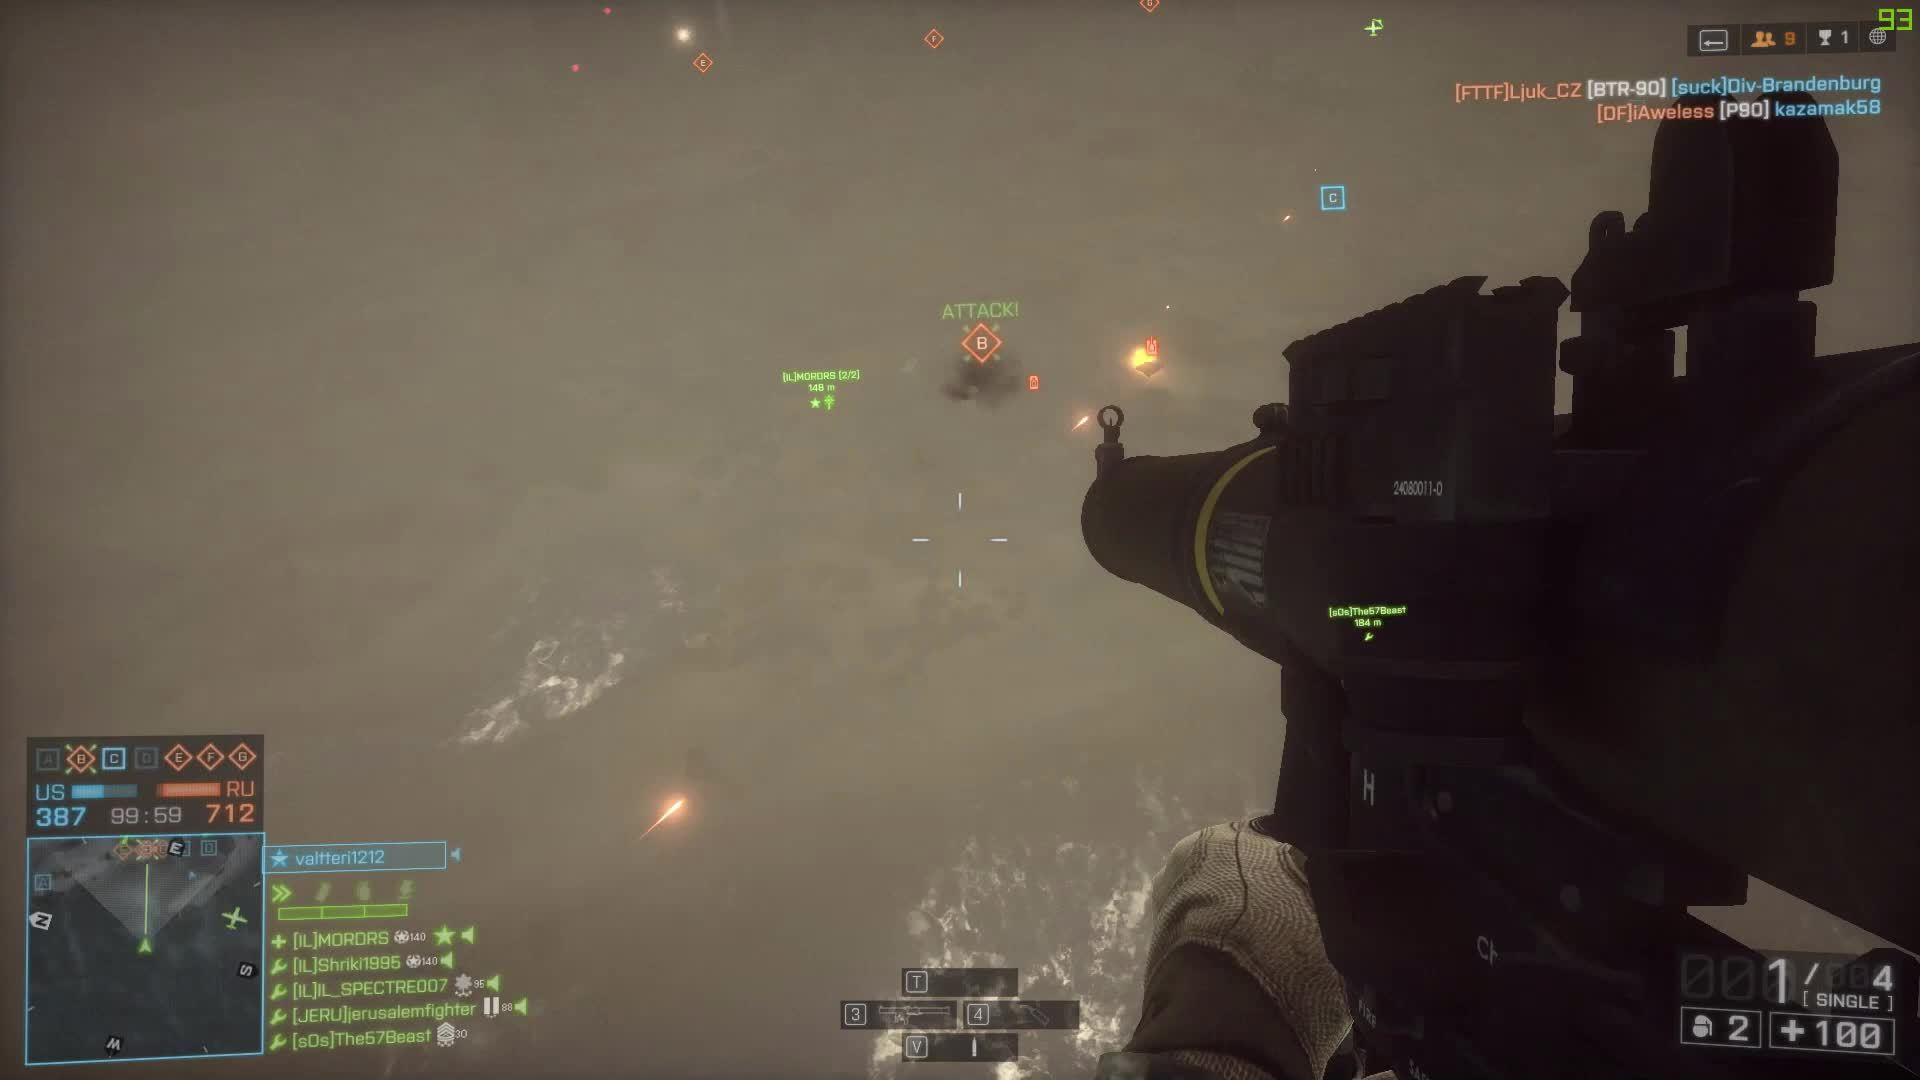 battlefield_4, parachute , Geting a 2 helicopters kills GIFs